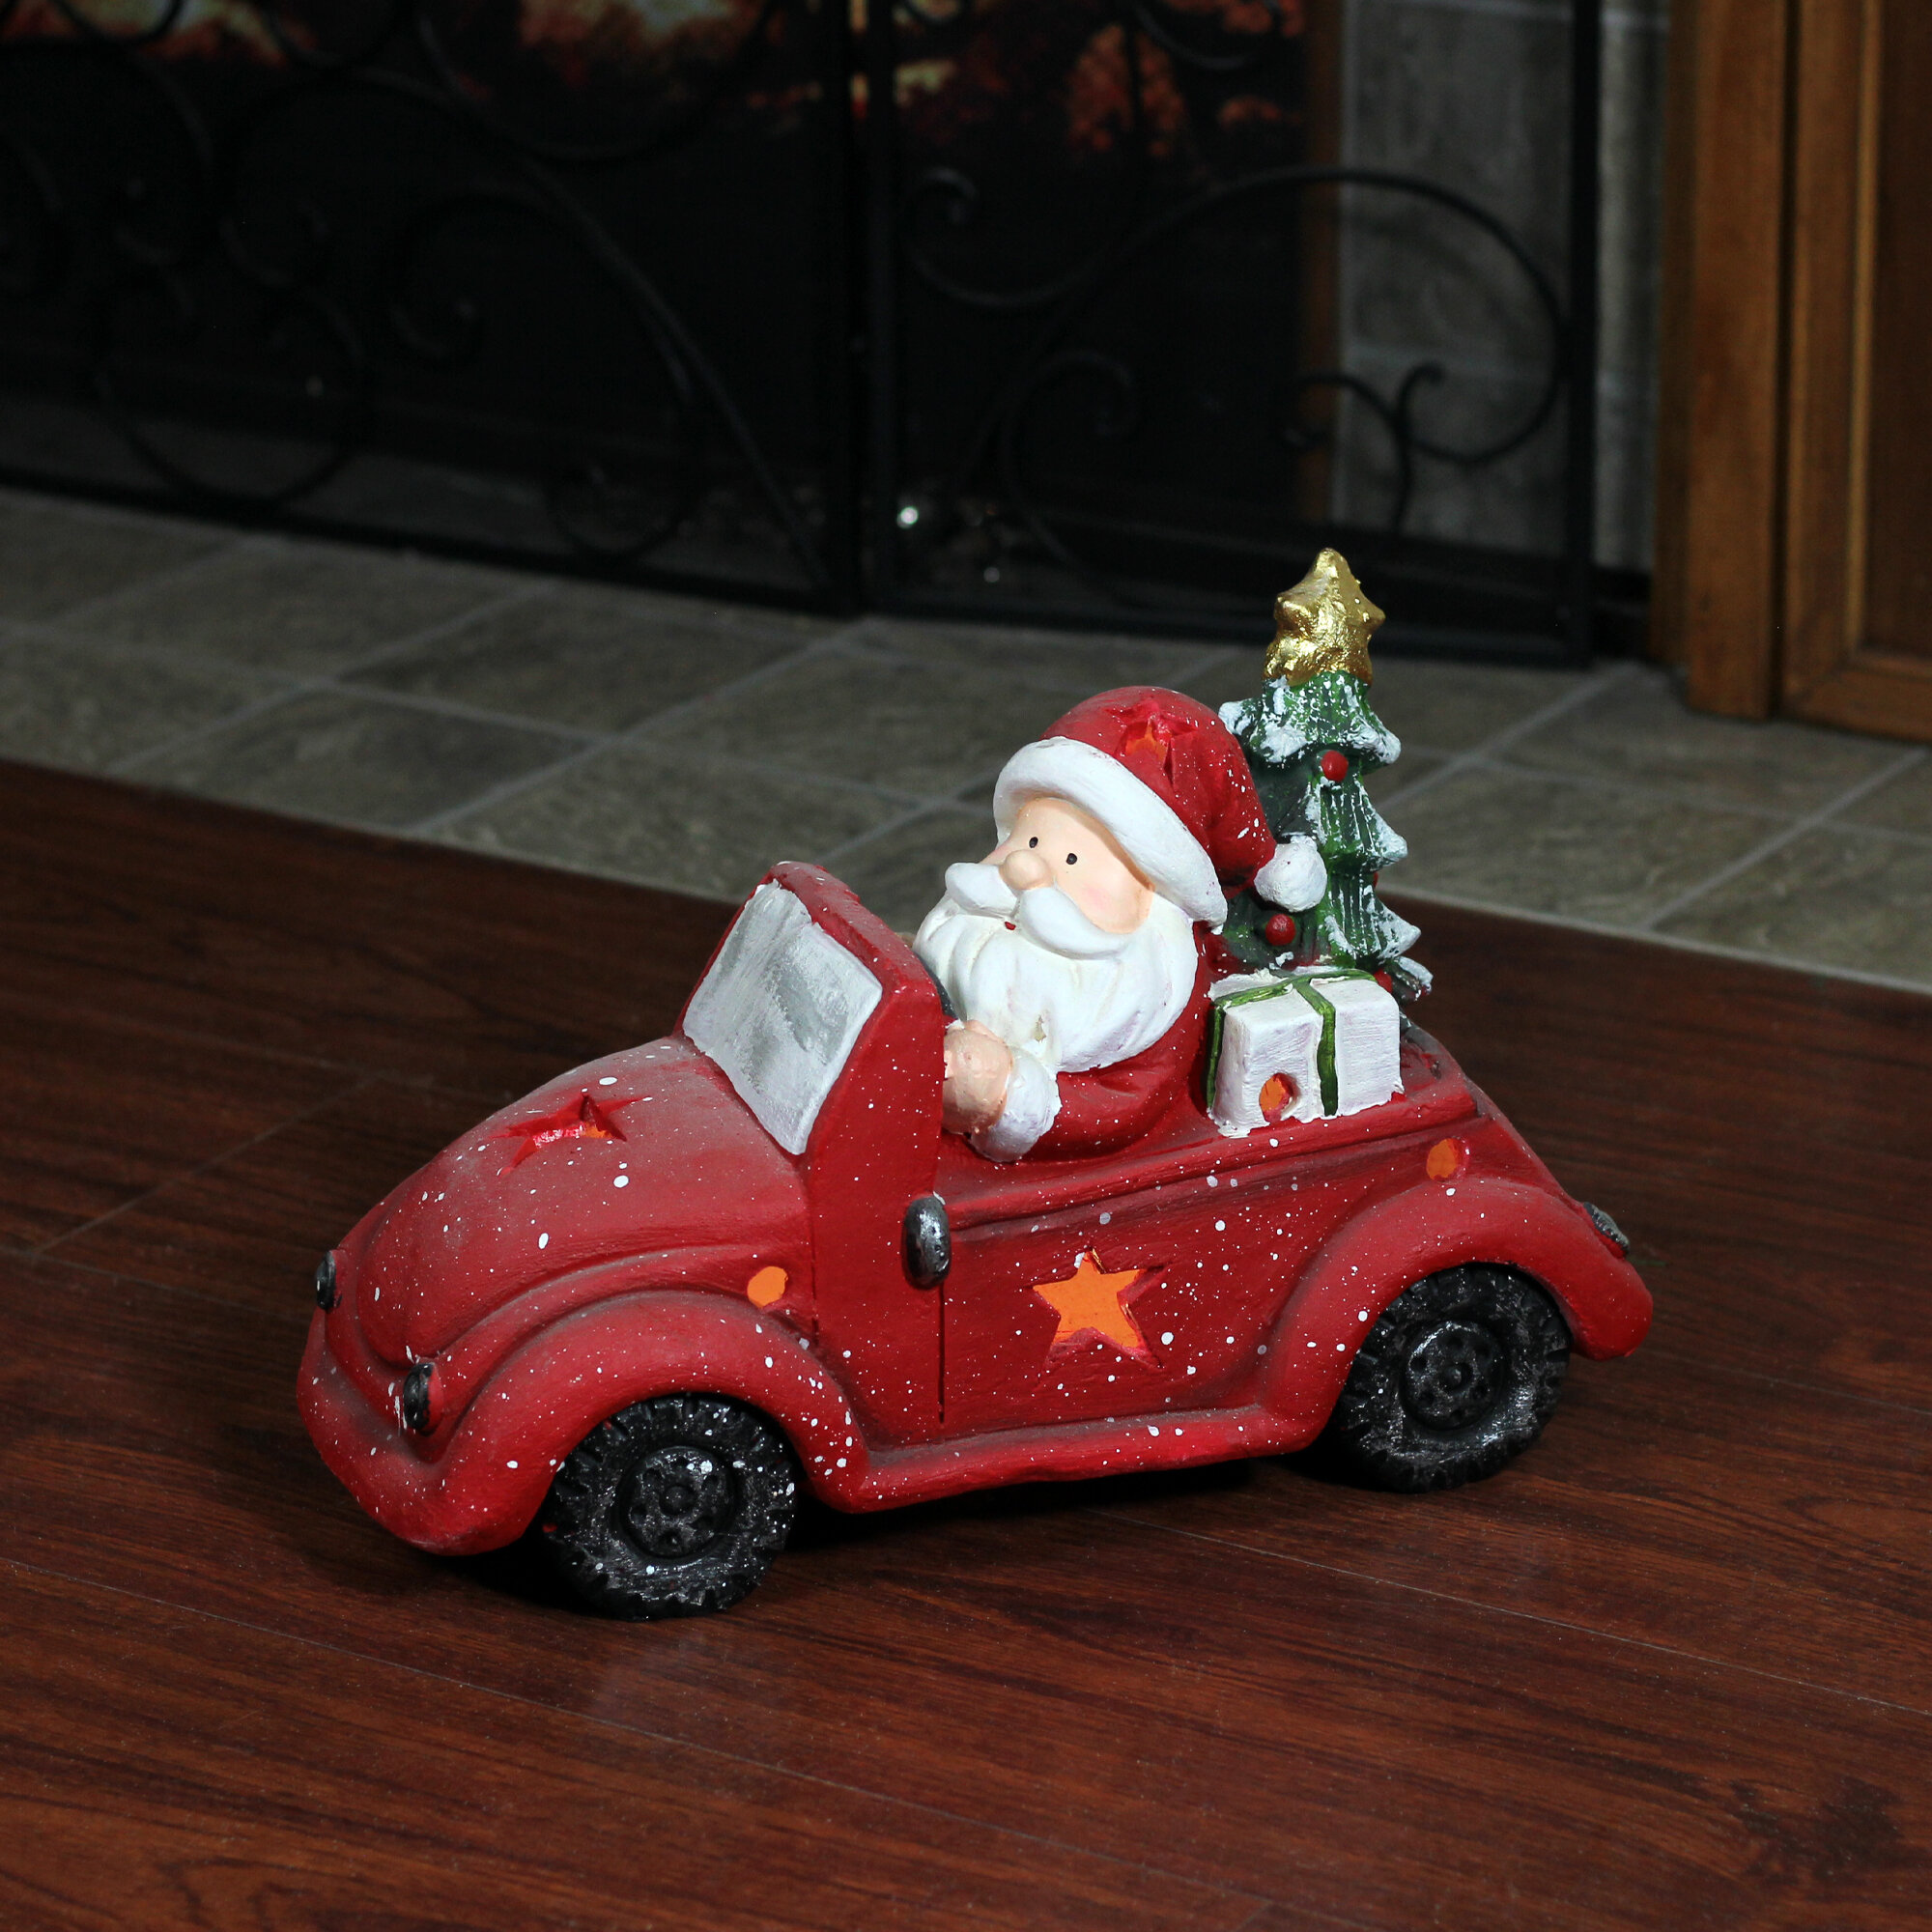 Northlight Santa Claus Driving Red Vintage Beetle With A Christmas Tree Table Top Decoration Wayfair